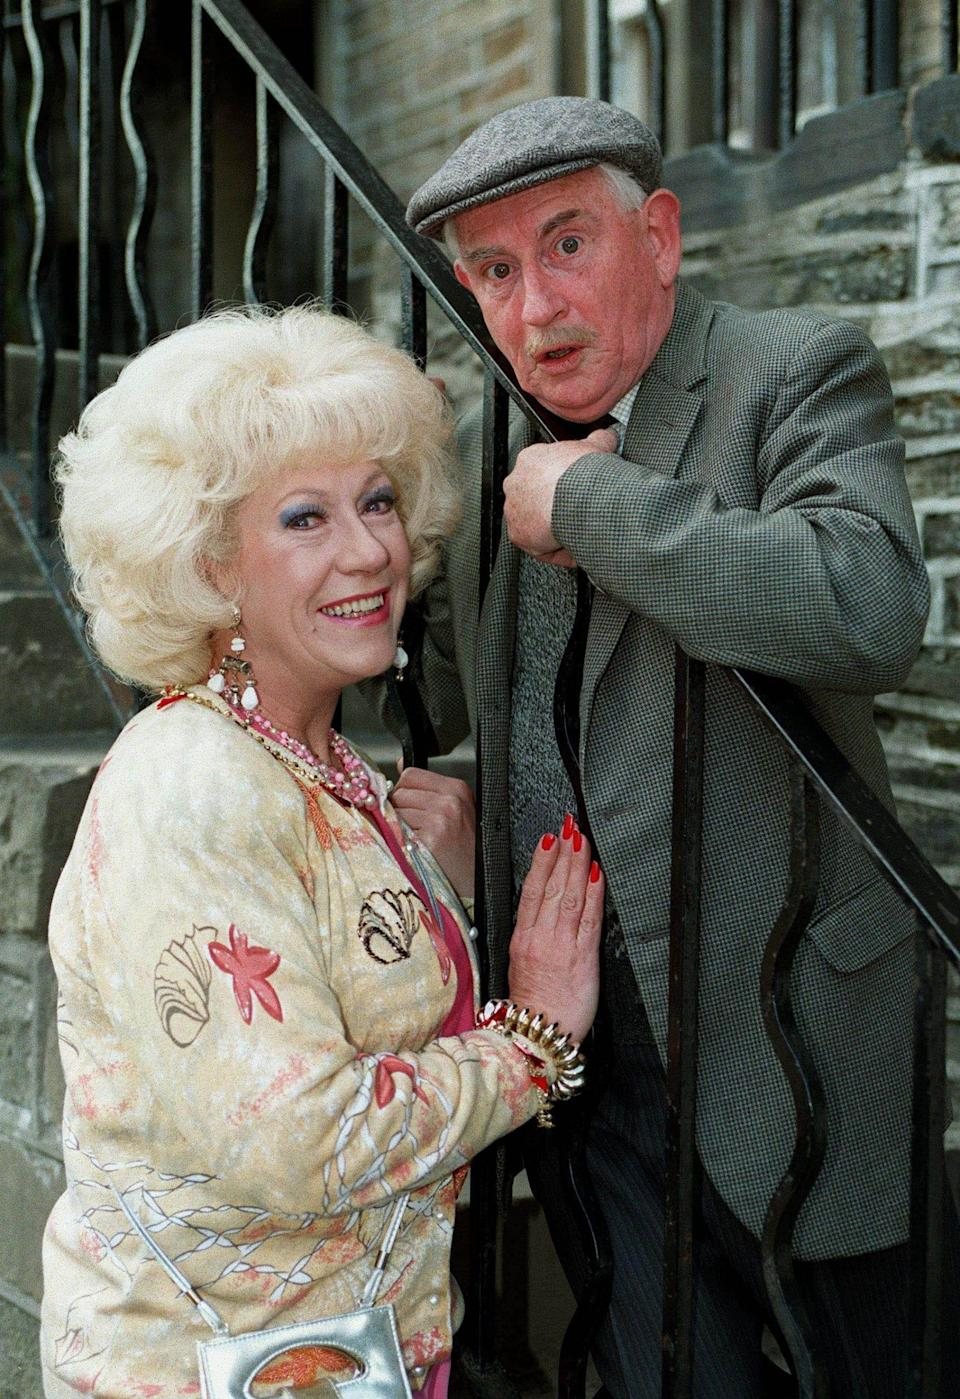 Howard with Marina, the object of his unrequited ardour, played by Jean Fergusson - Allstar Picture Library Ltd/Alamy